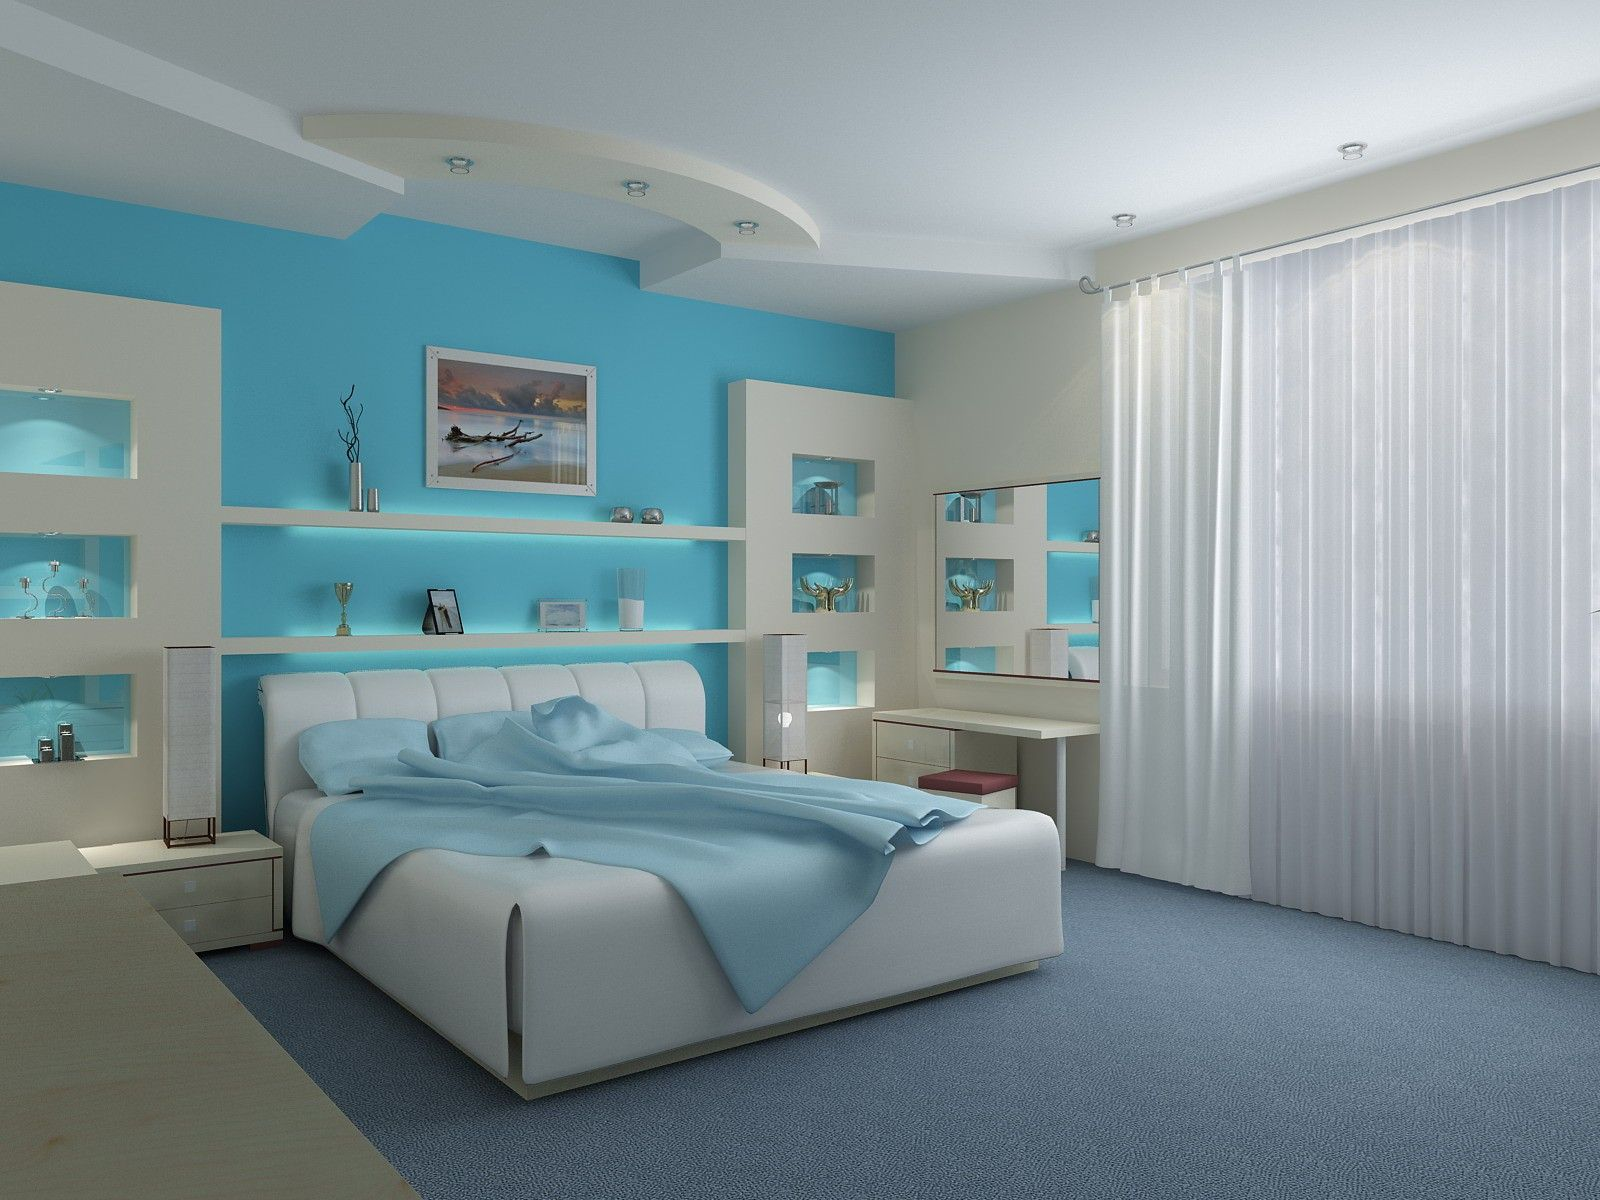 Blue Bedroom Interior Design HD Wallpaper turchese Pinterest